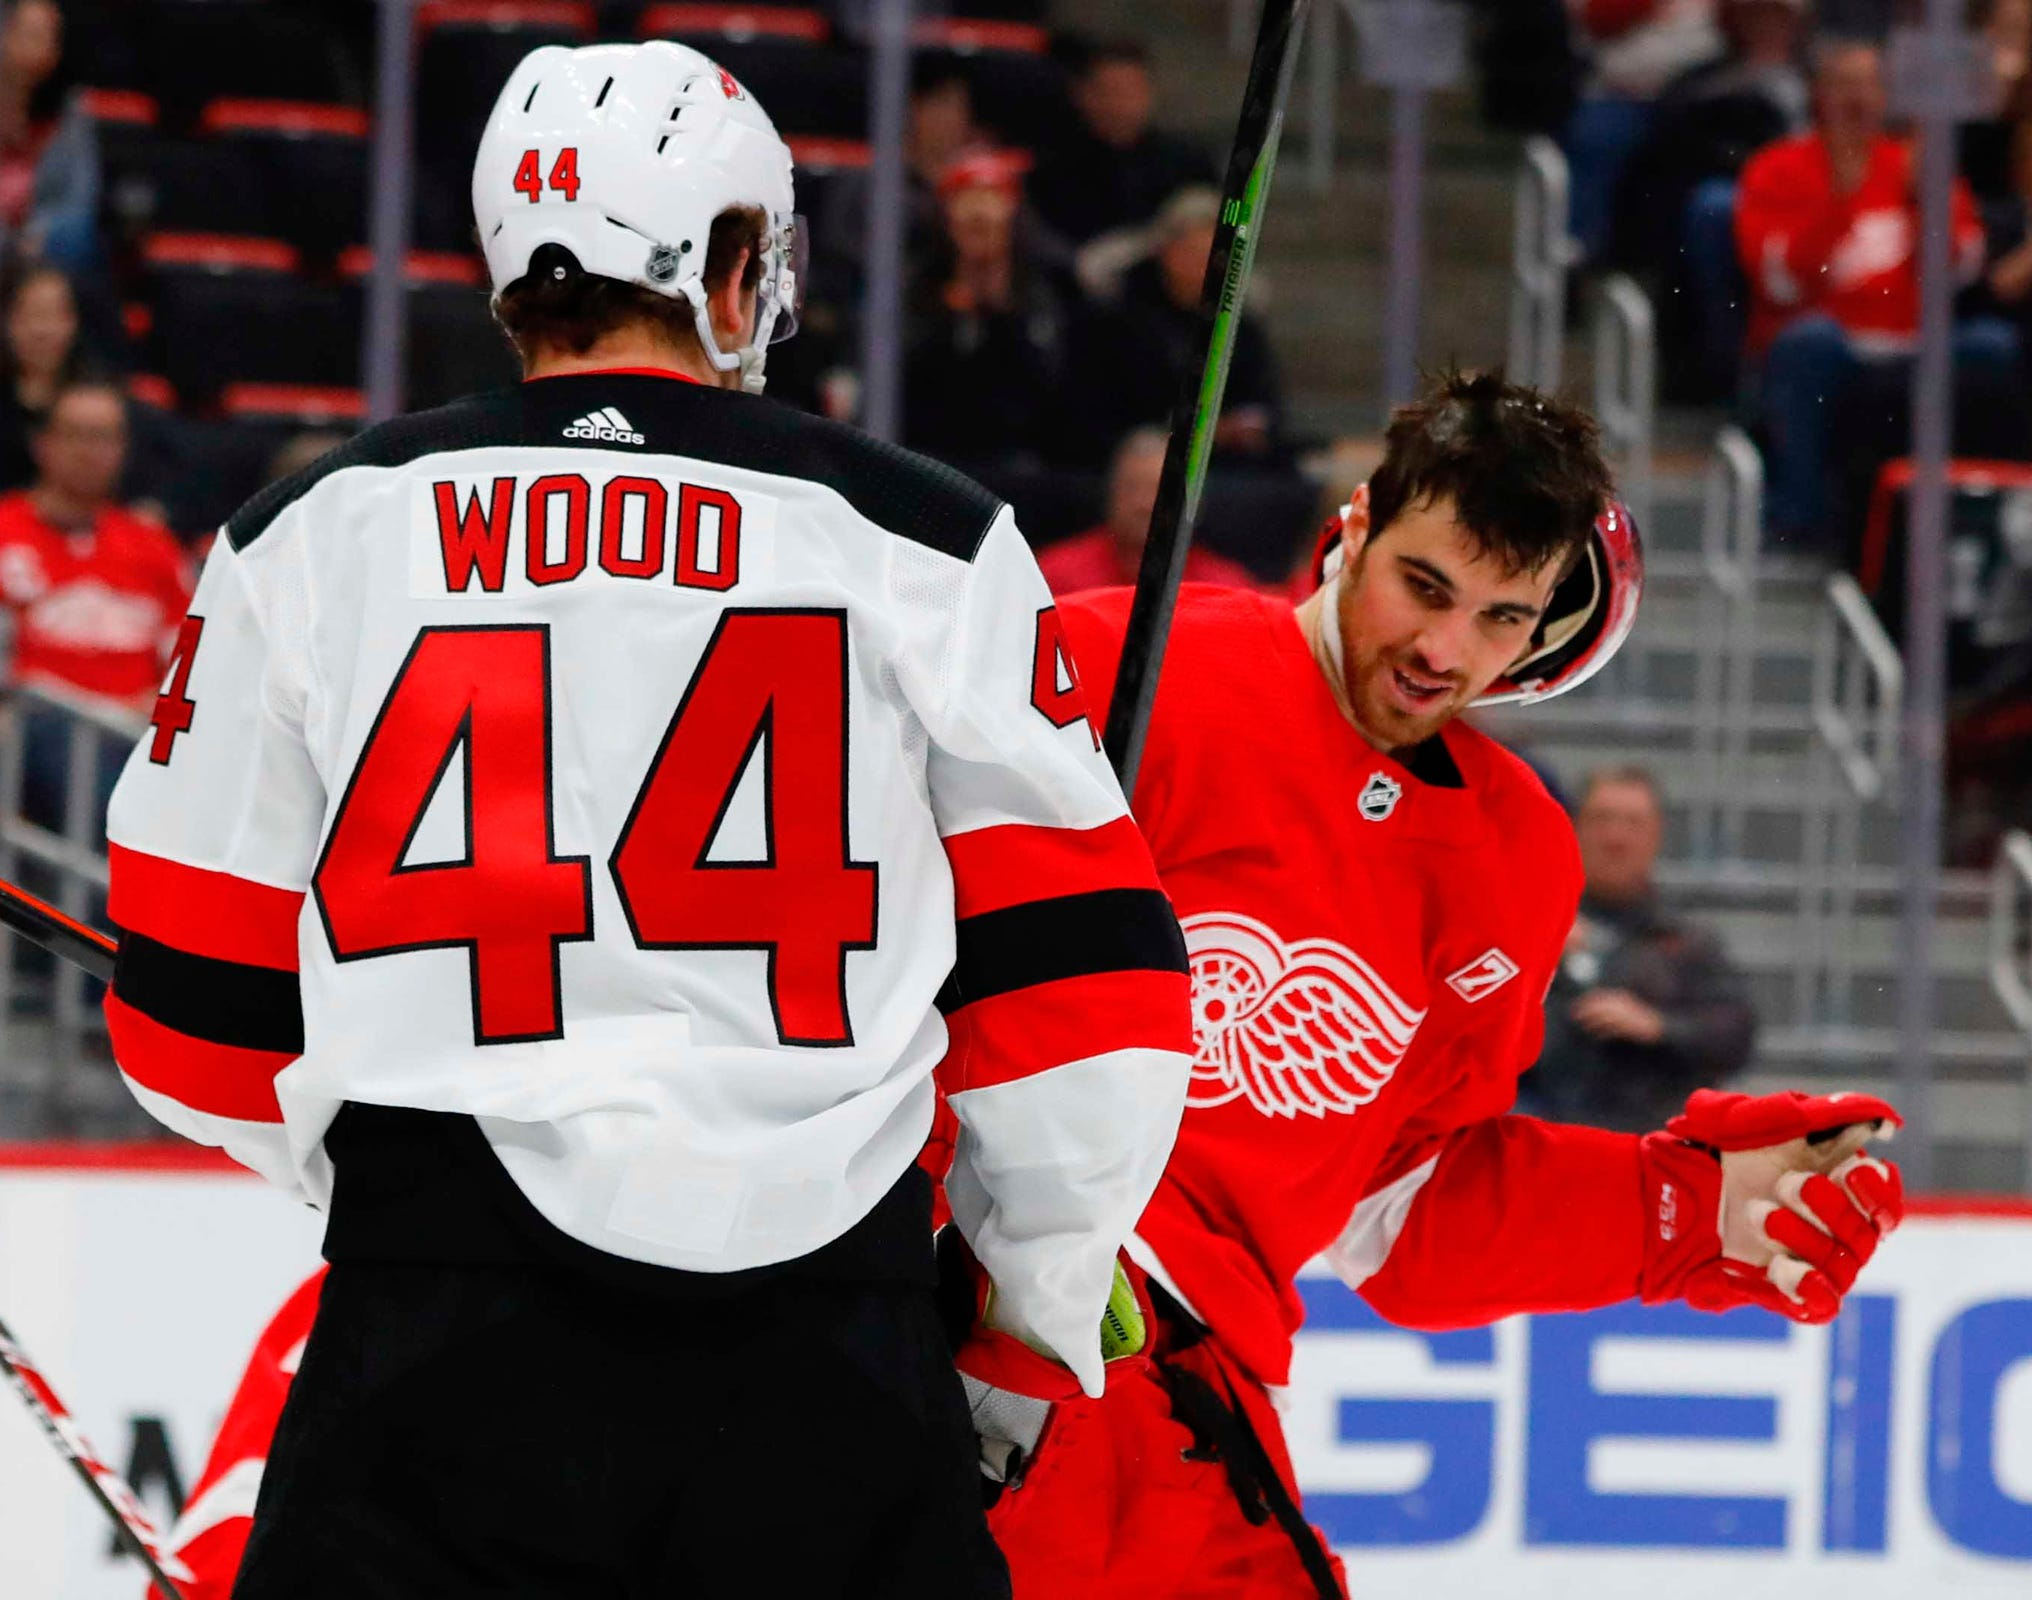 Devils left wing Miles Wood shoves Red Wings defenseman Jake Chelios in the first period on Friday, March 29, 2019, at Little Caesars Arena.